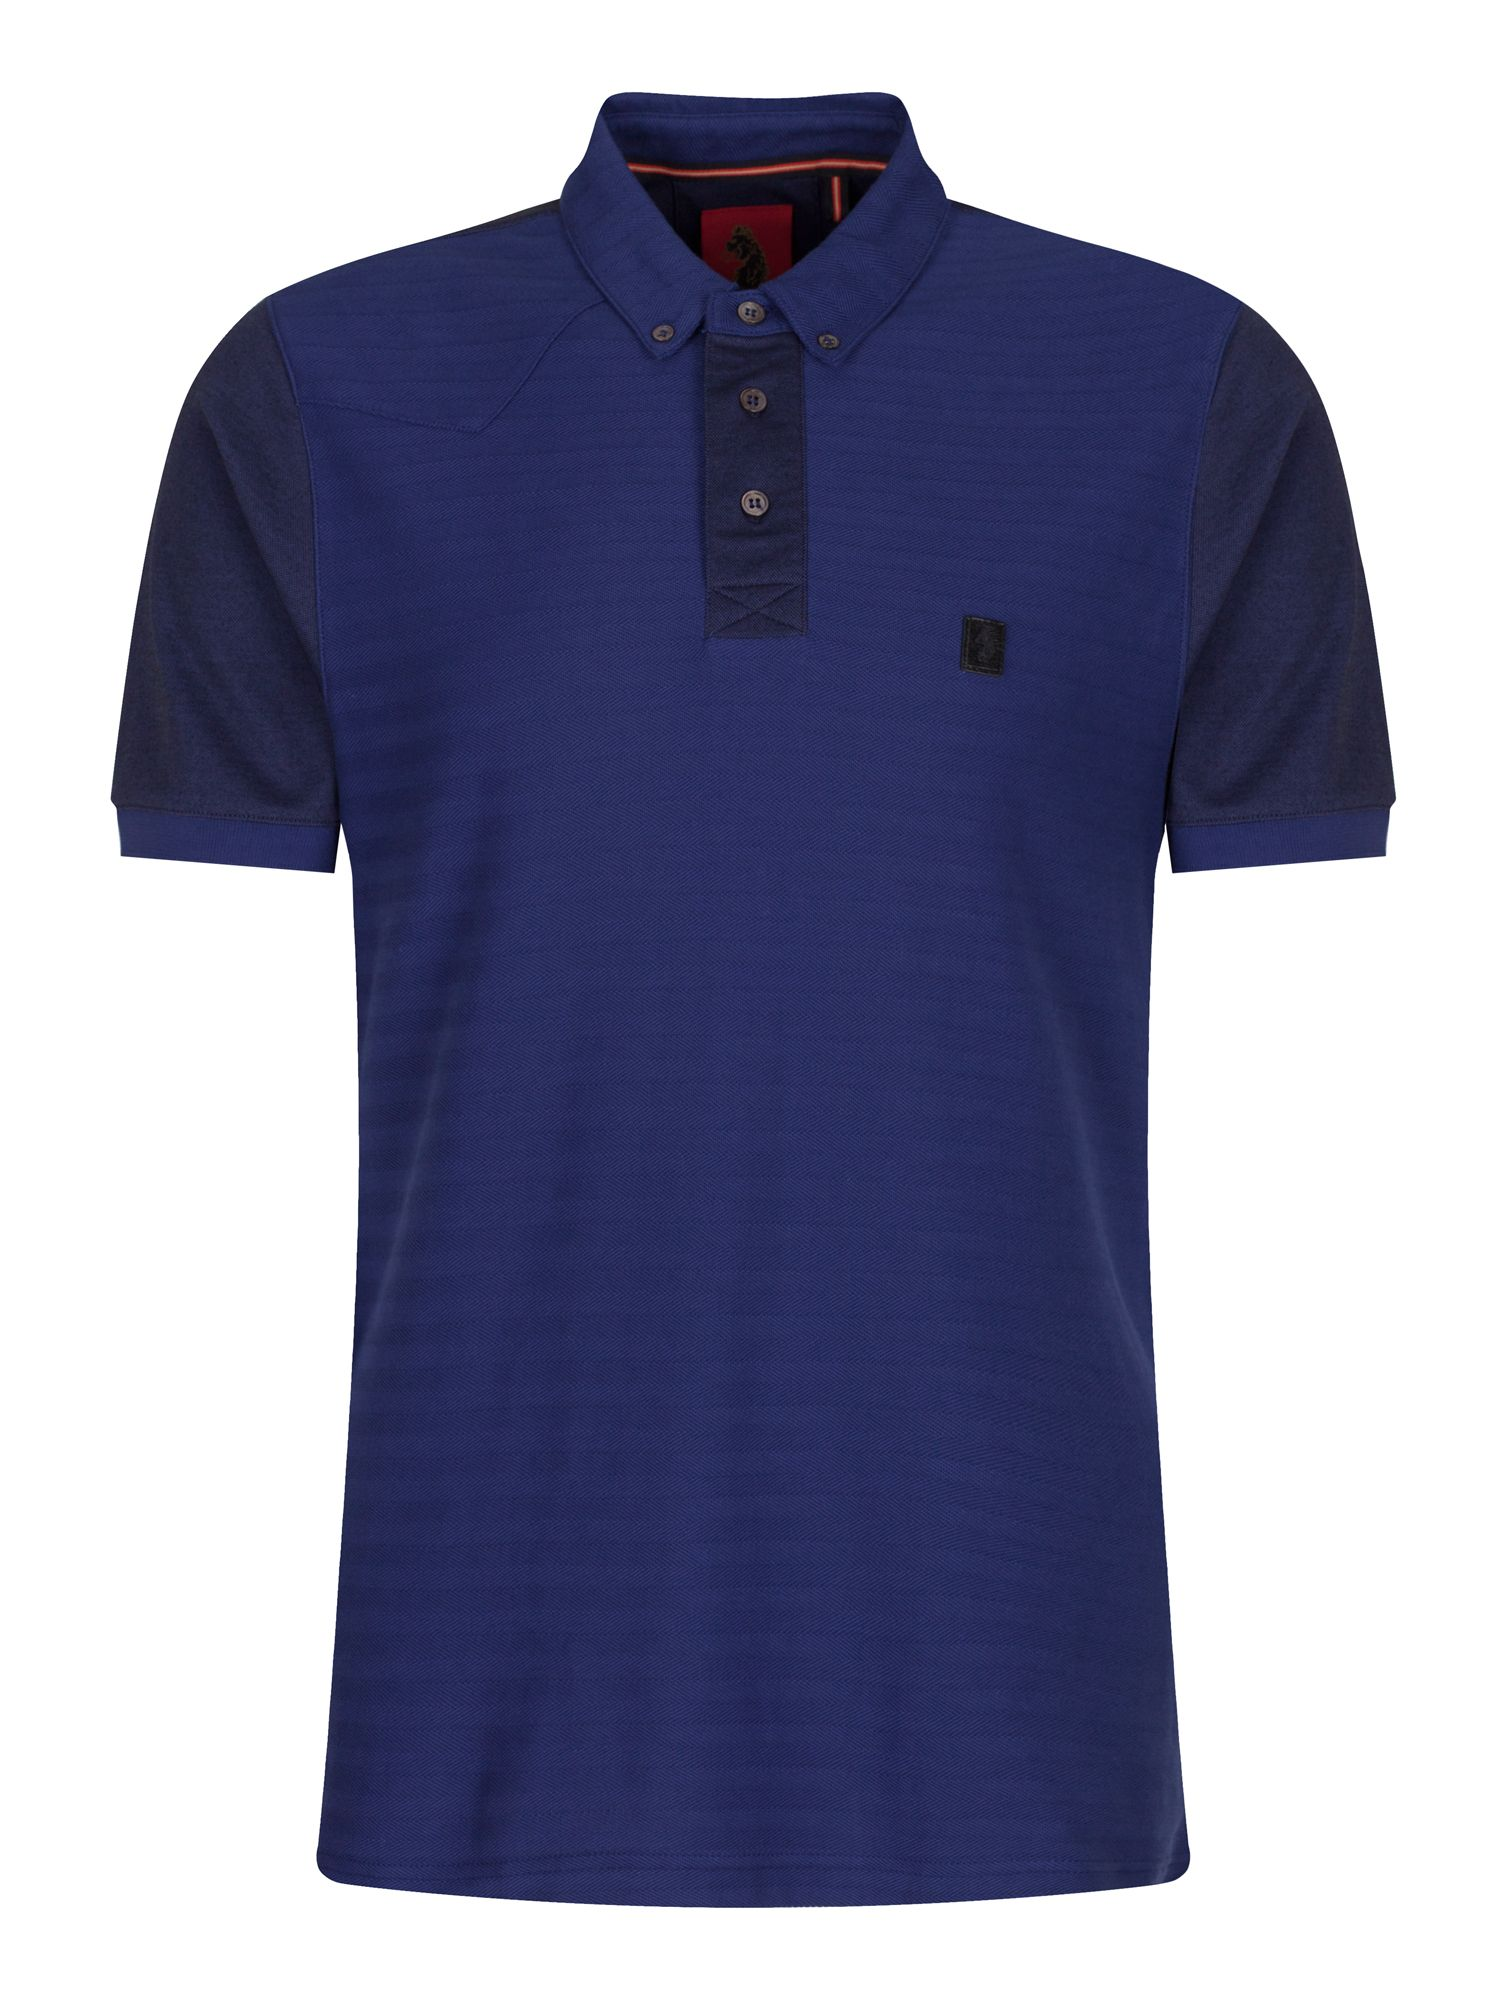 Men's Luke 1977 Happy Days Hem Placket Detail Polo Shirt, Blue